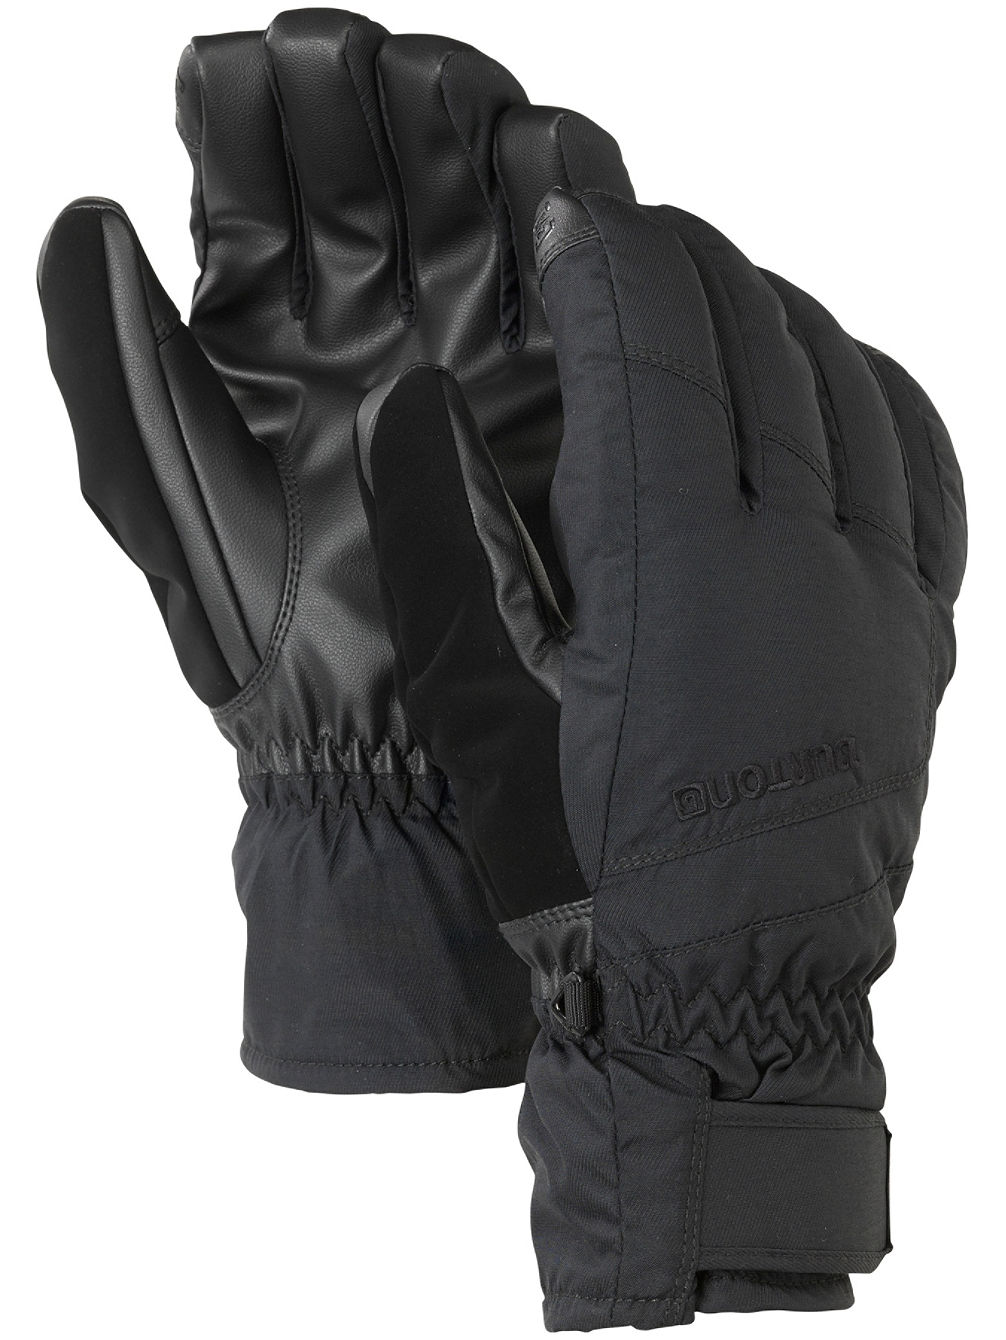 Profile Undergloves